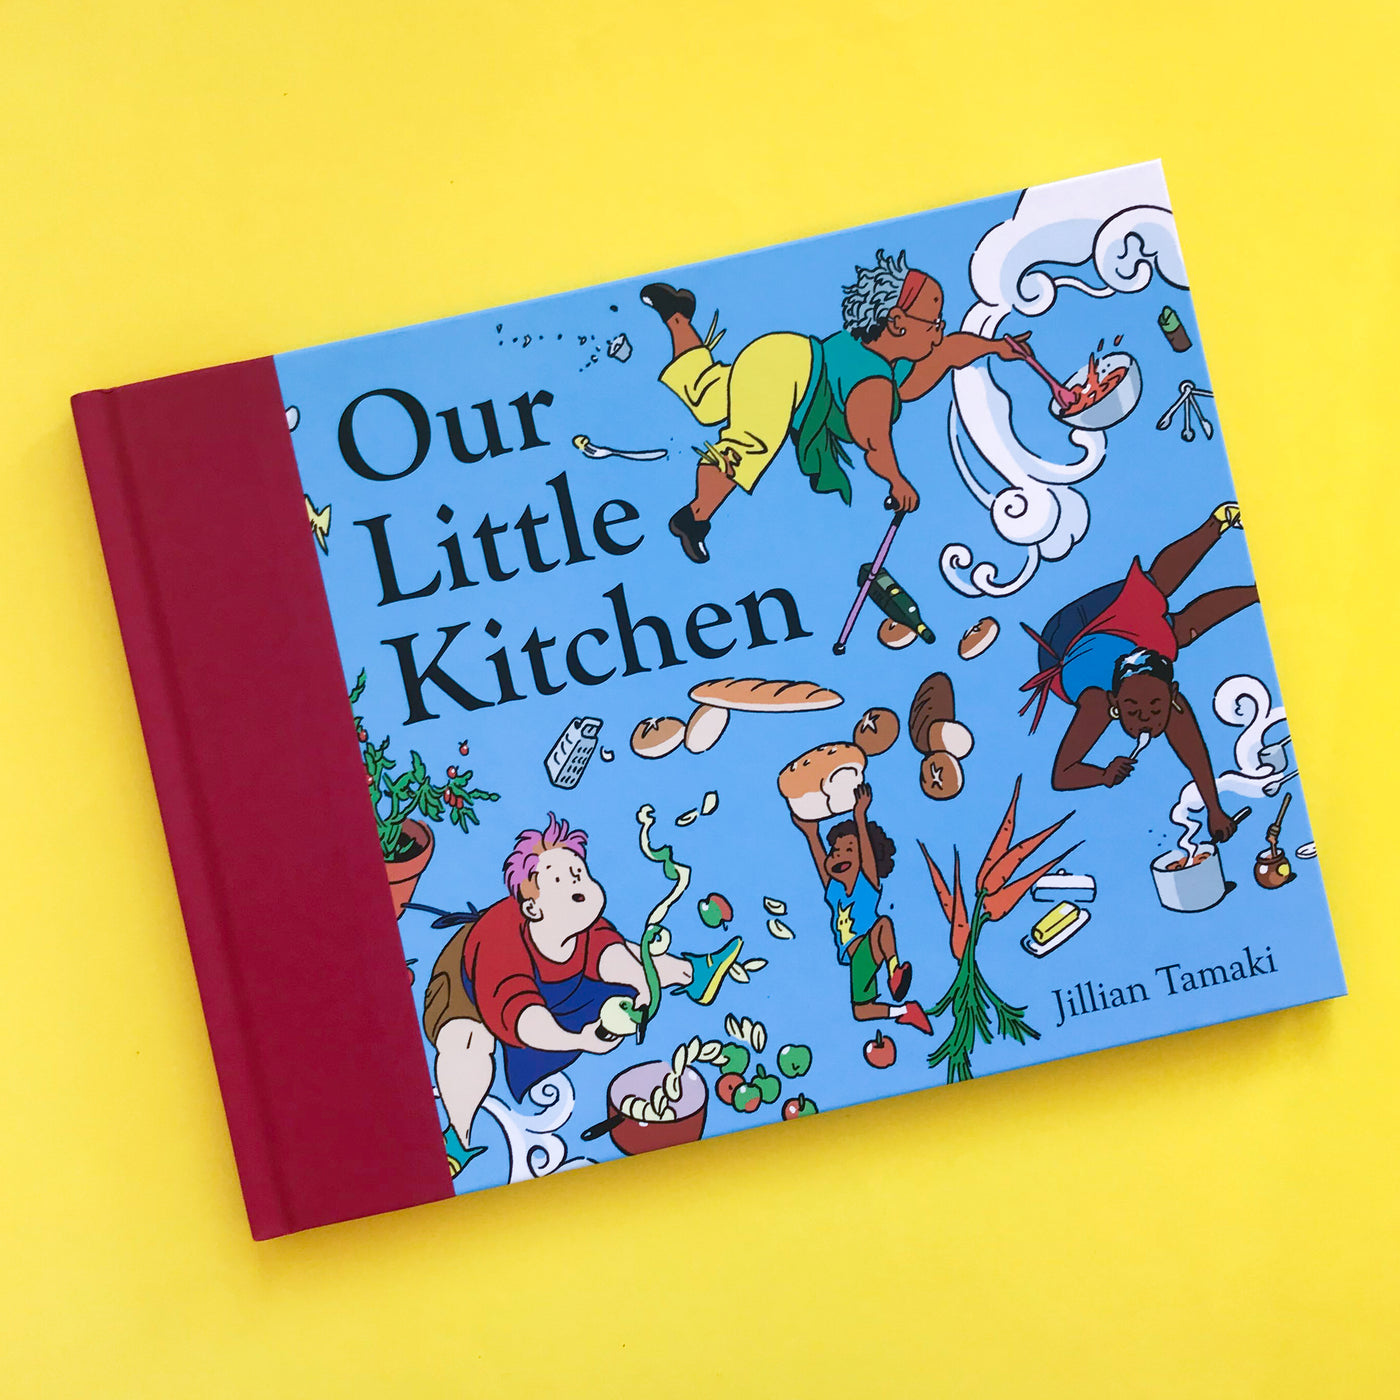 Our Little Kitchen by Jillian Tamaki